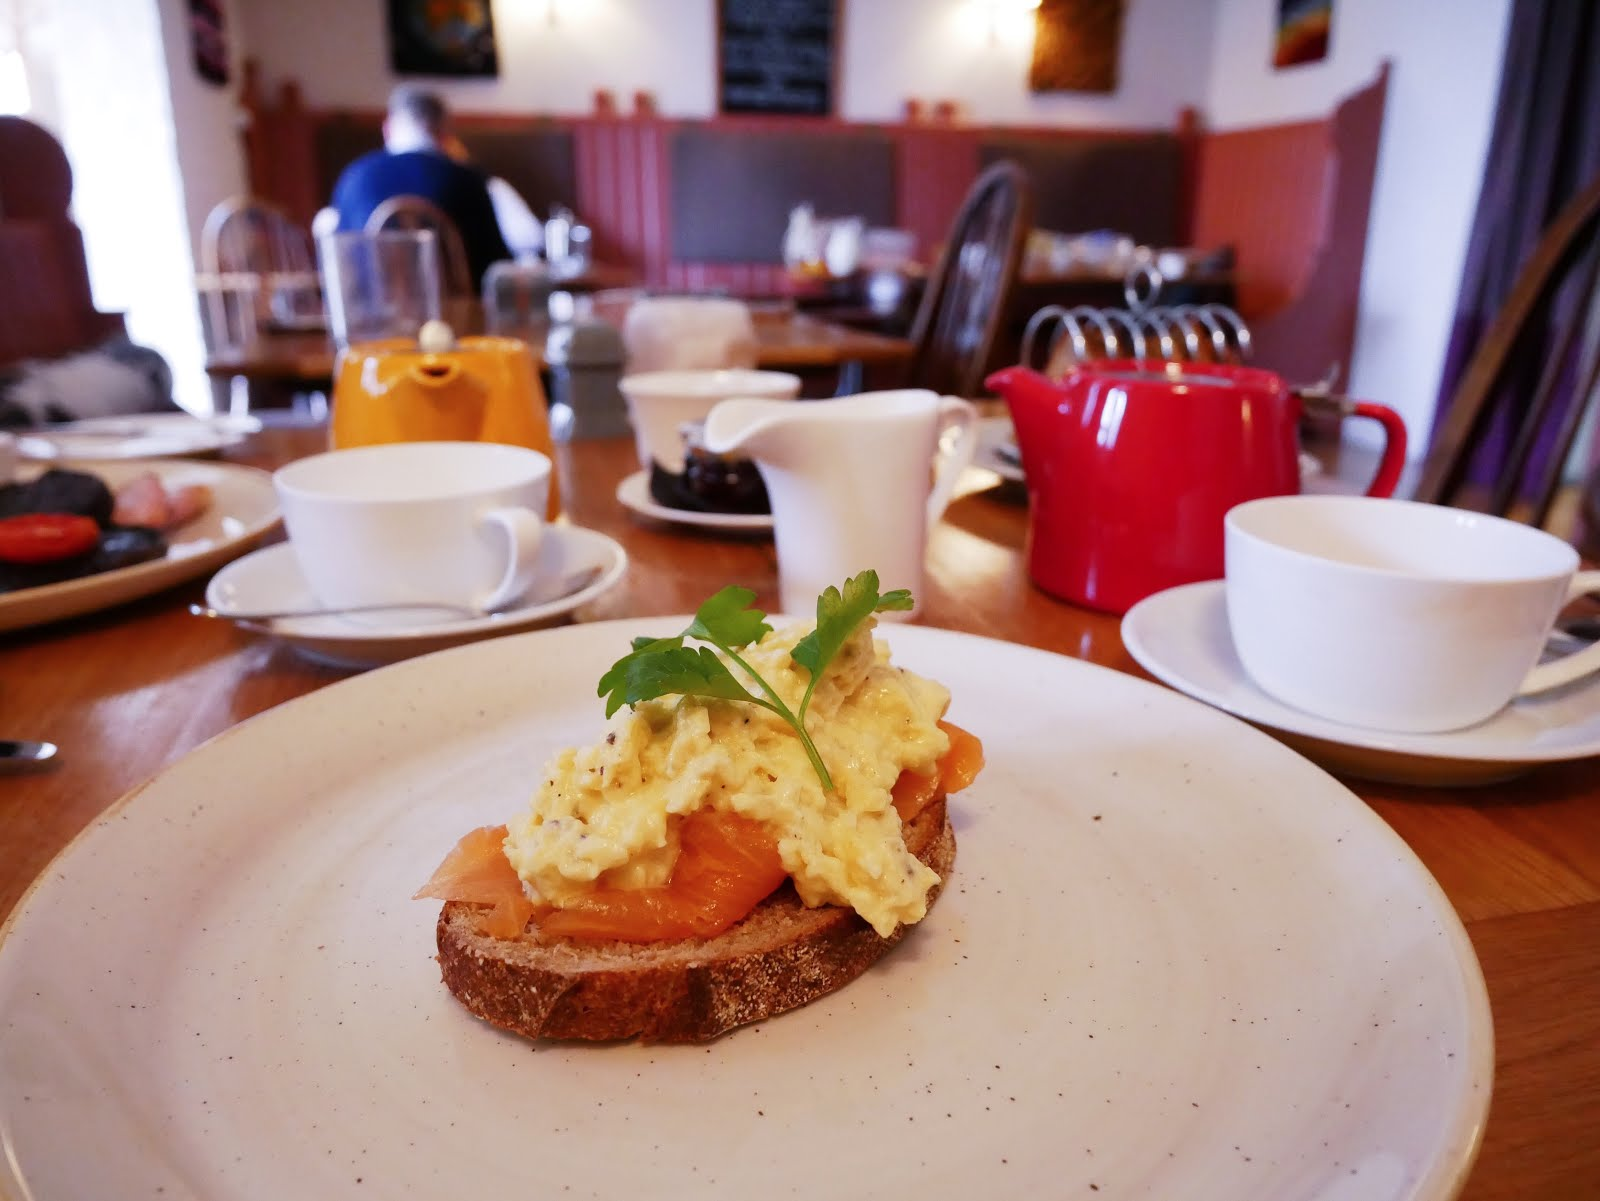 St Mary's Inn smoked salmon and scrambled egg breakfast